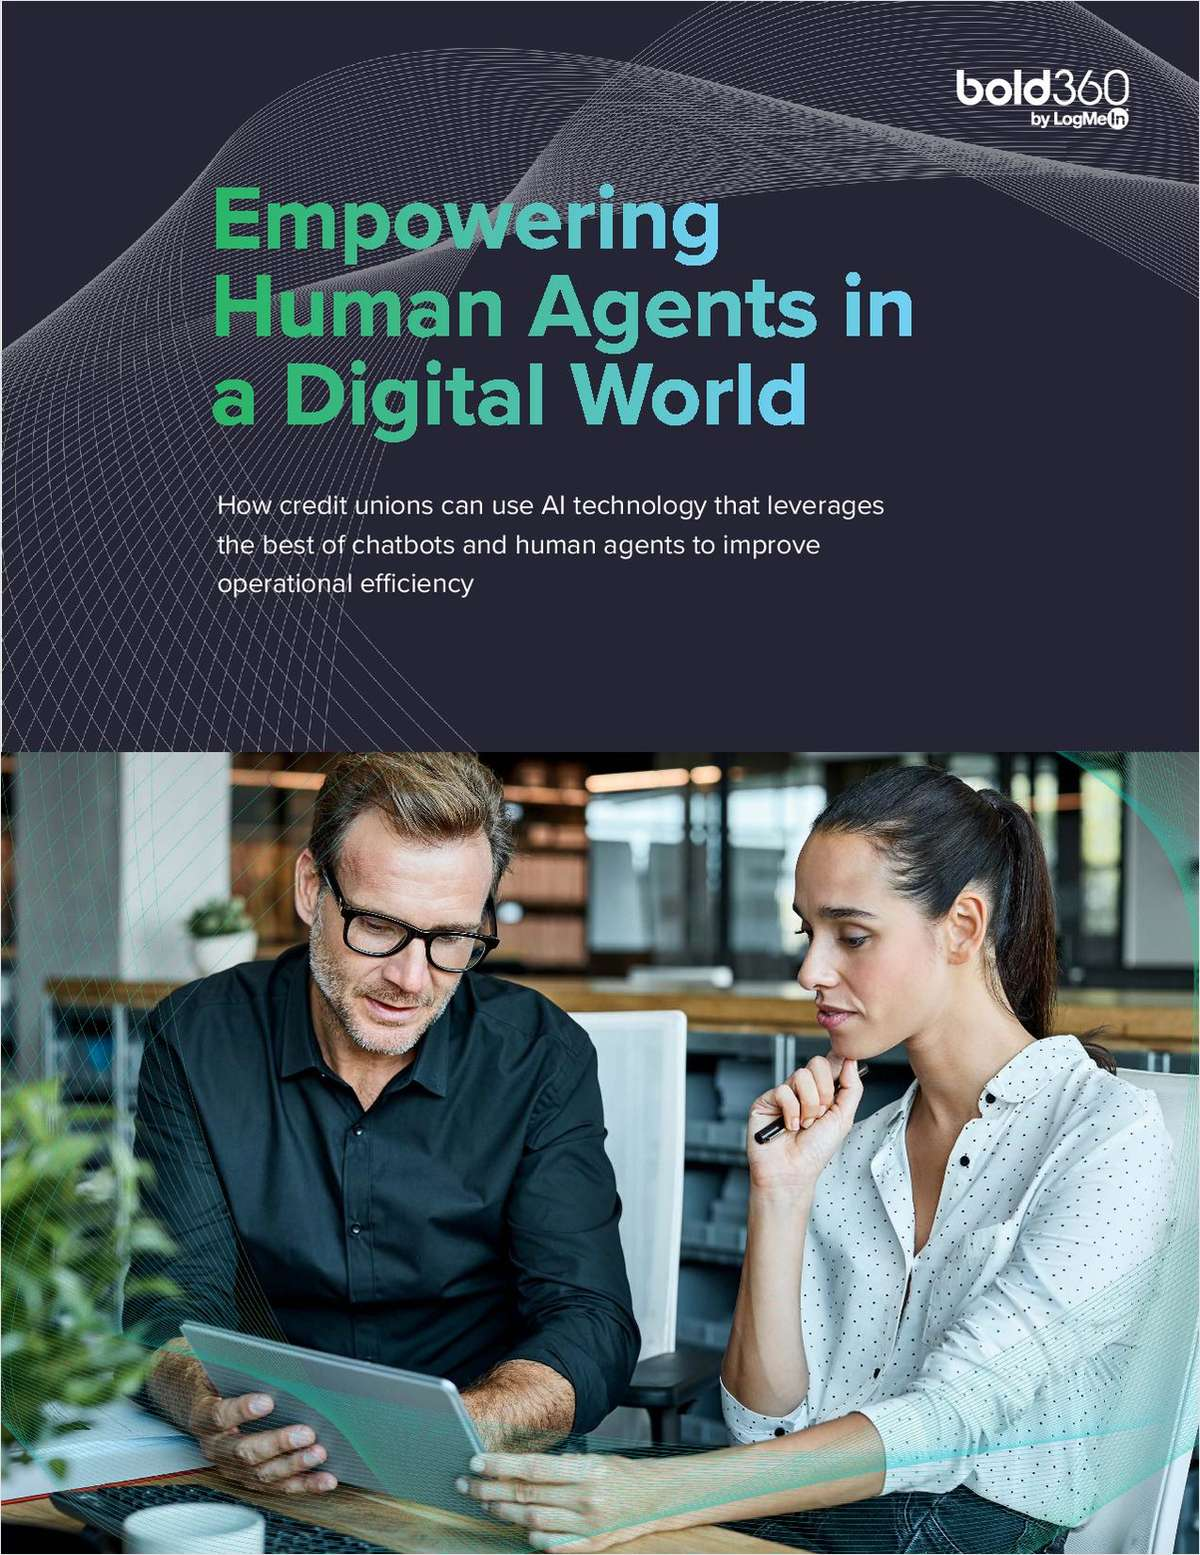 Empowering Human Agents in a Digital World